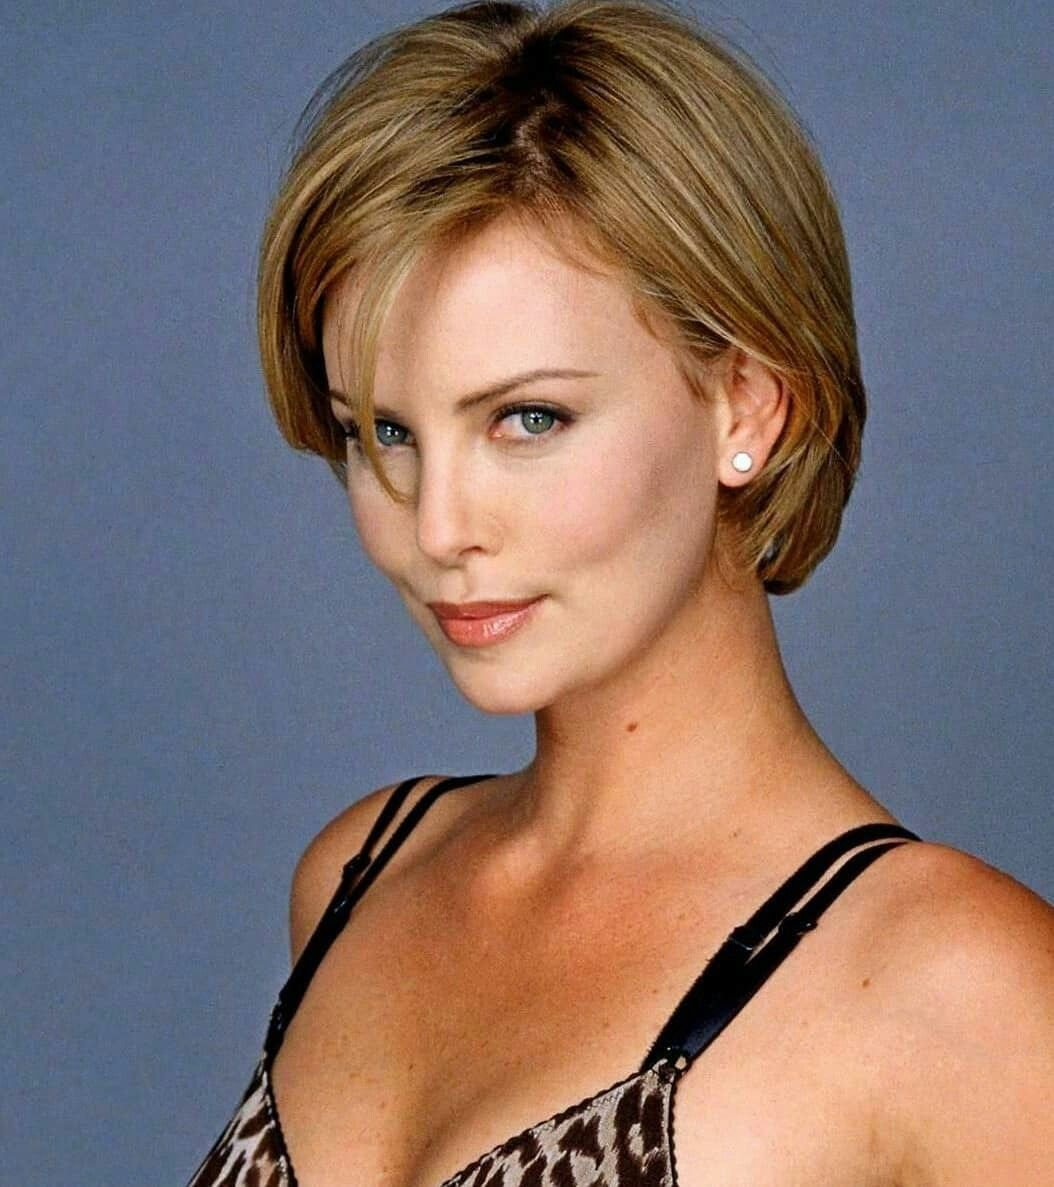 Charlize Theron Ny Blondes: Charlize Theron .. The Real Bright Star